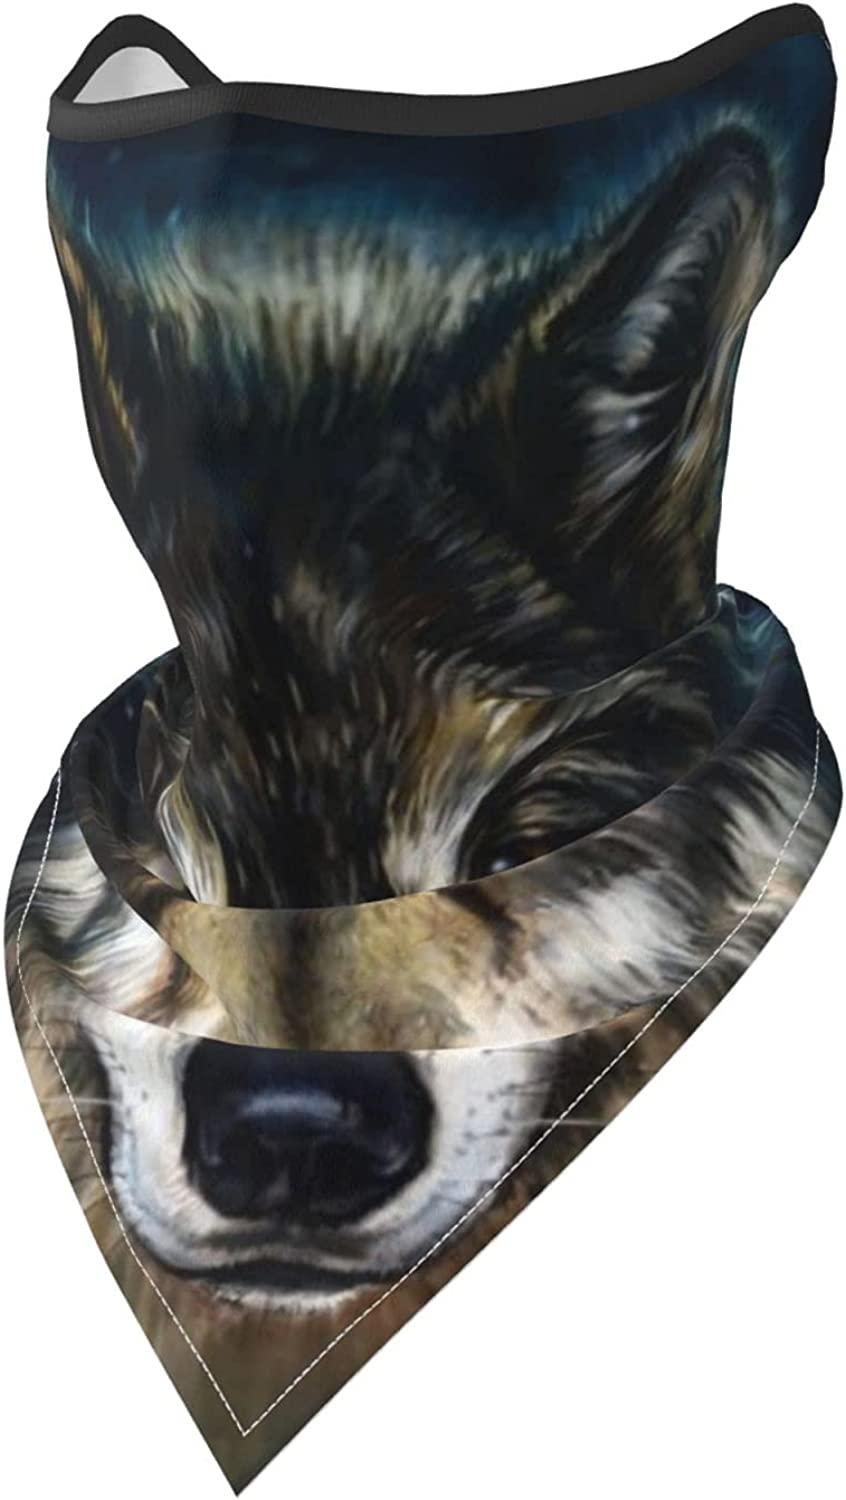 Boho Style Wolf Head Animal-2 Breathable Bandana Face Mask Neck Gaiter Windproof Sports Mask Scarf Headwear for Men Women Outdoor Hiking Cycling Running Motorcycling